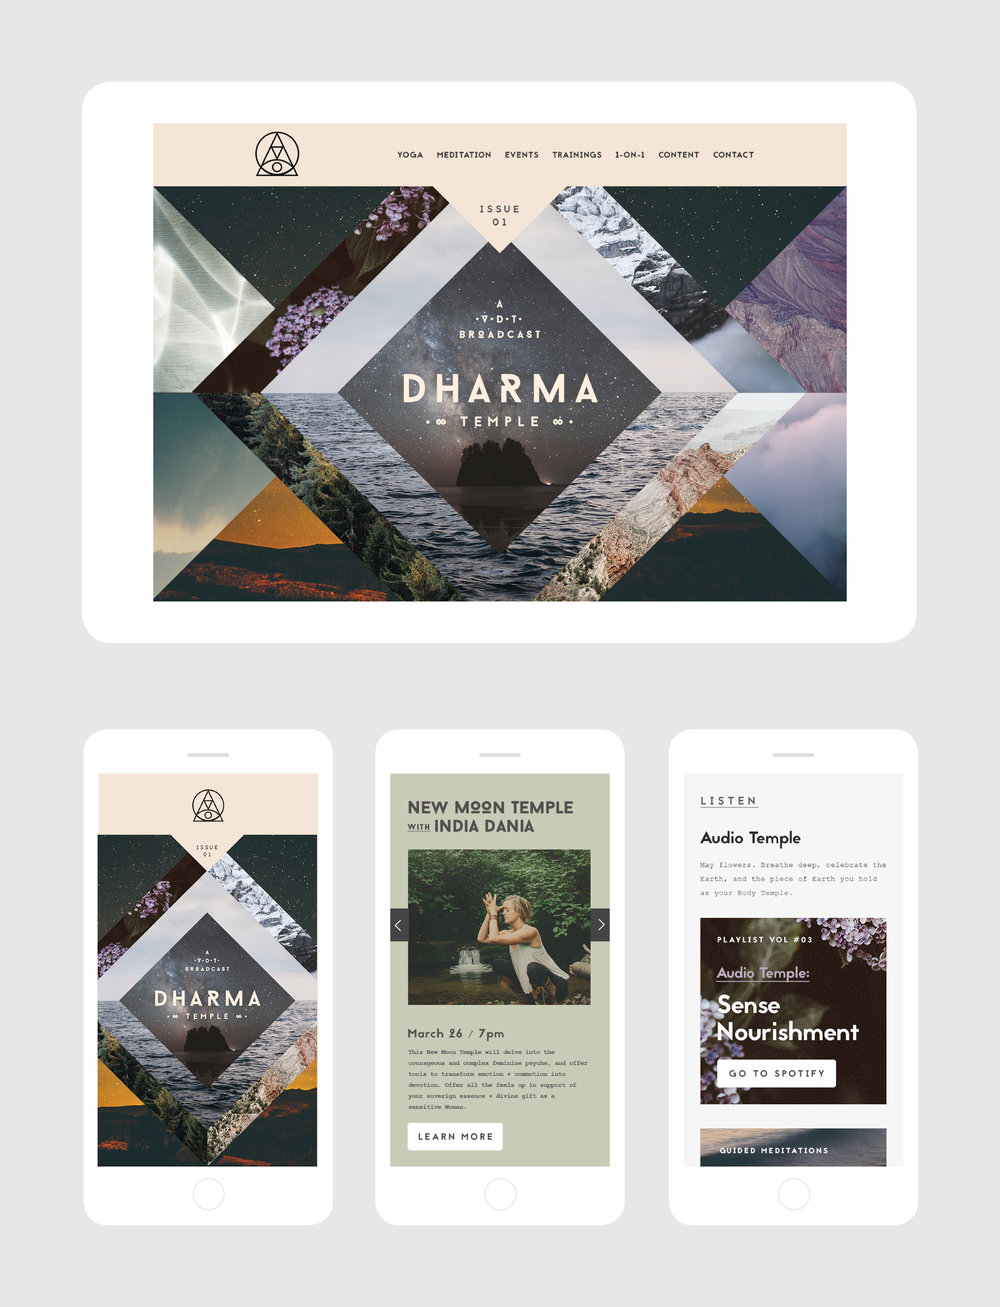 Digital artwork and web content design for an online newsletter